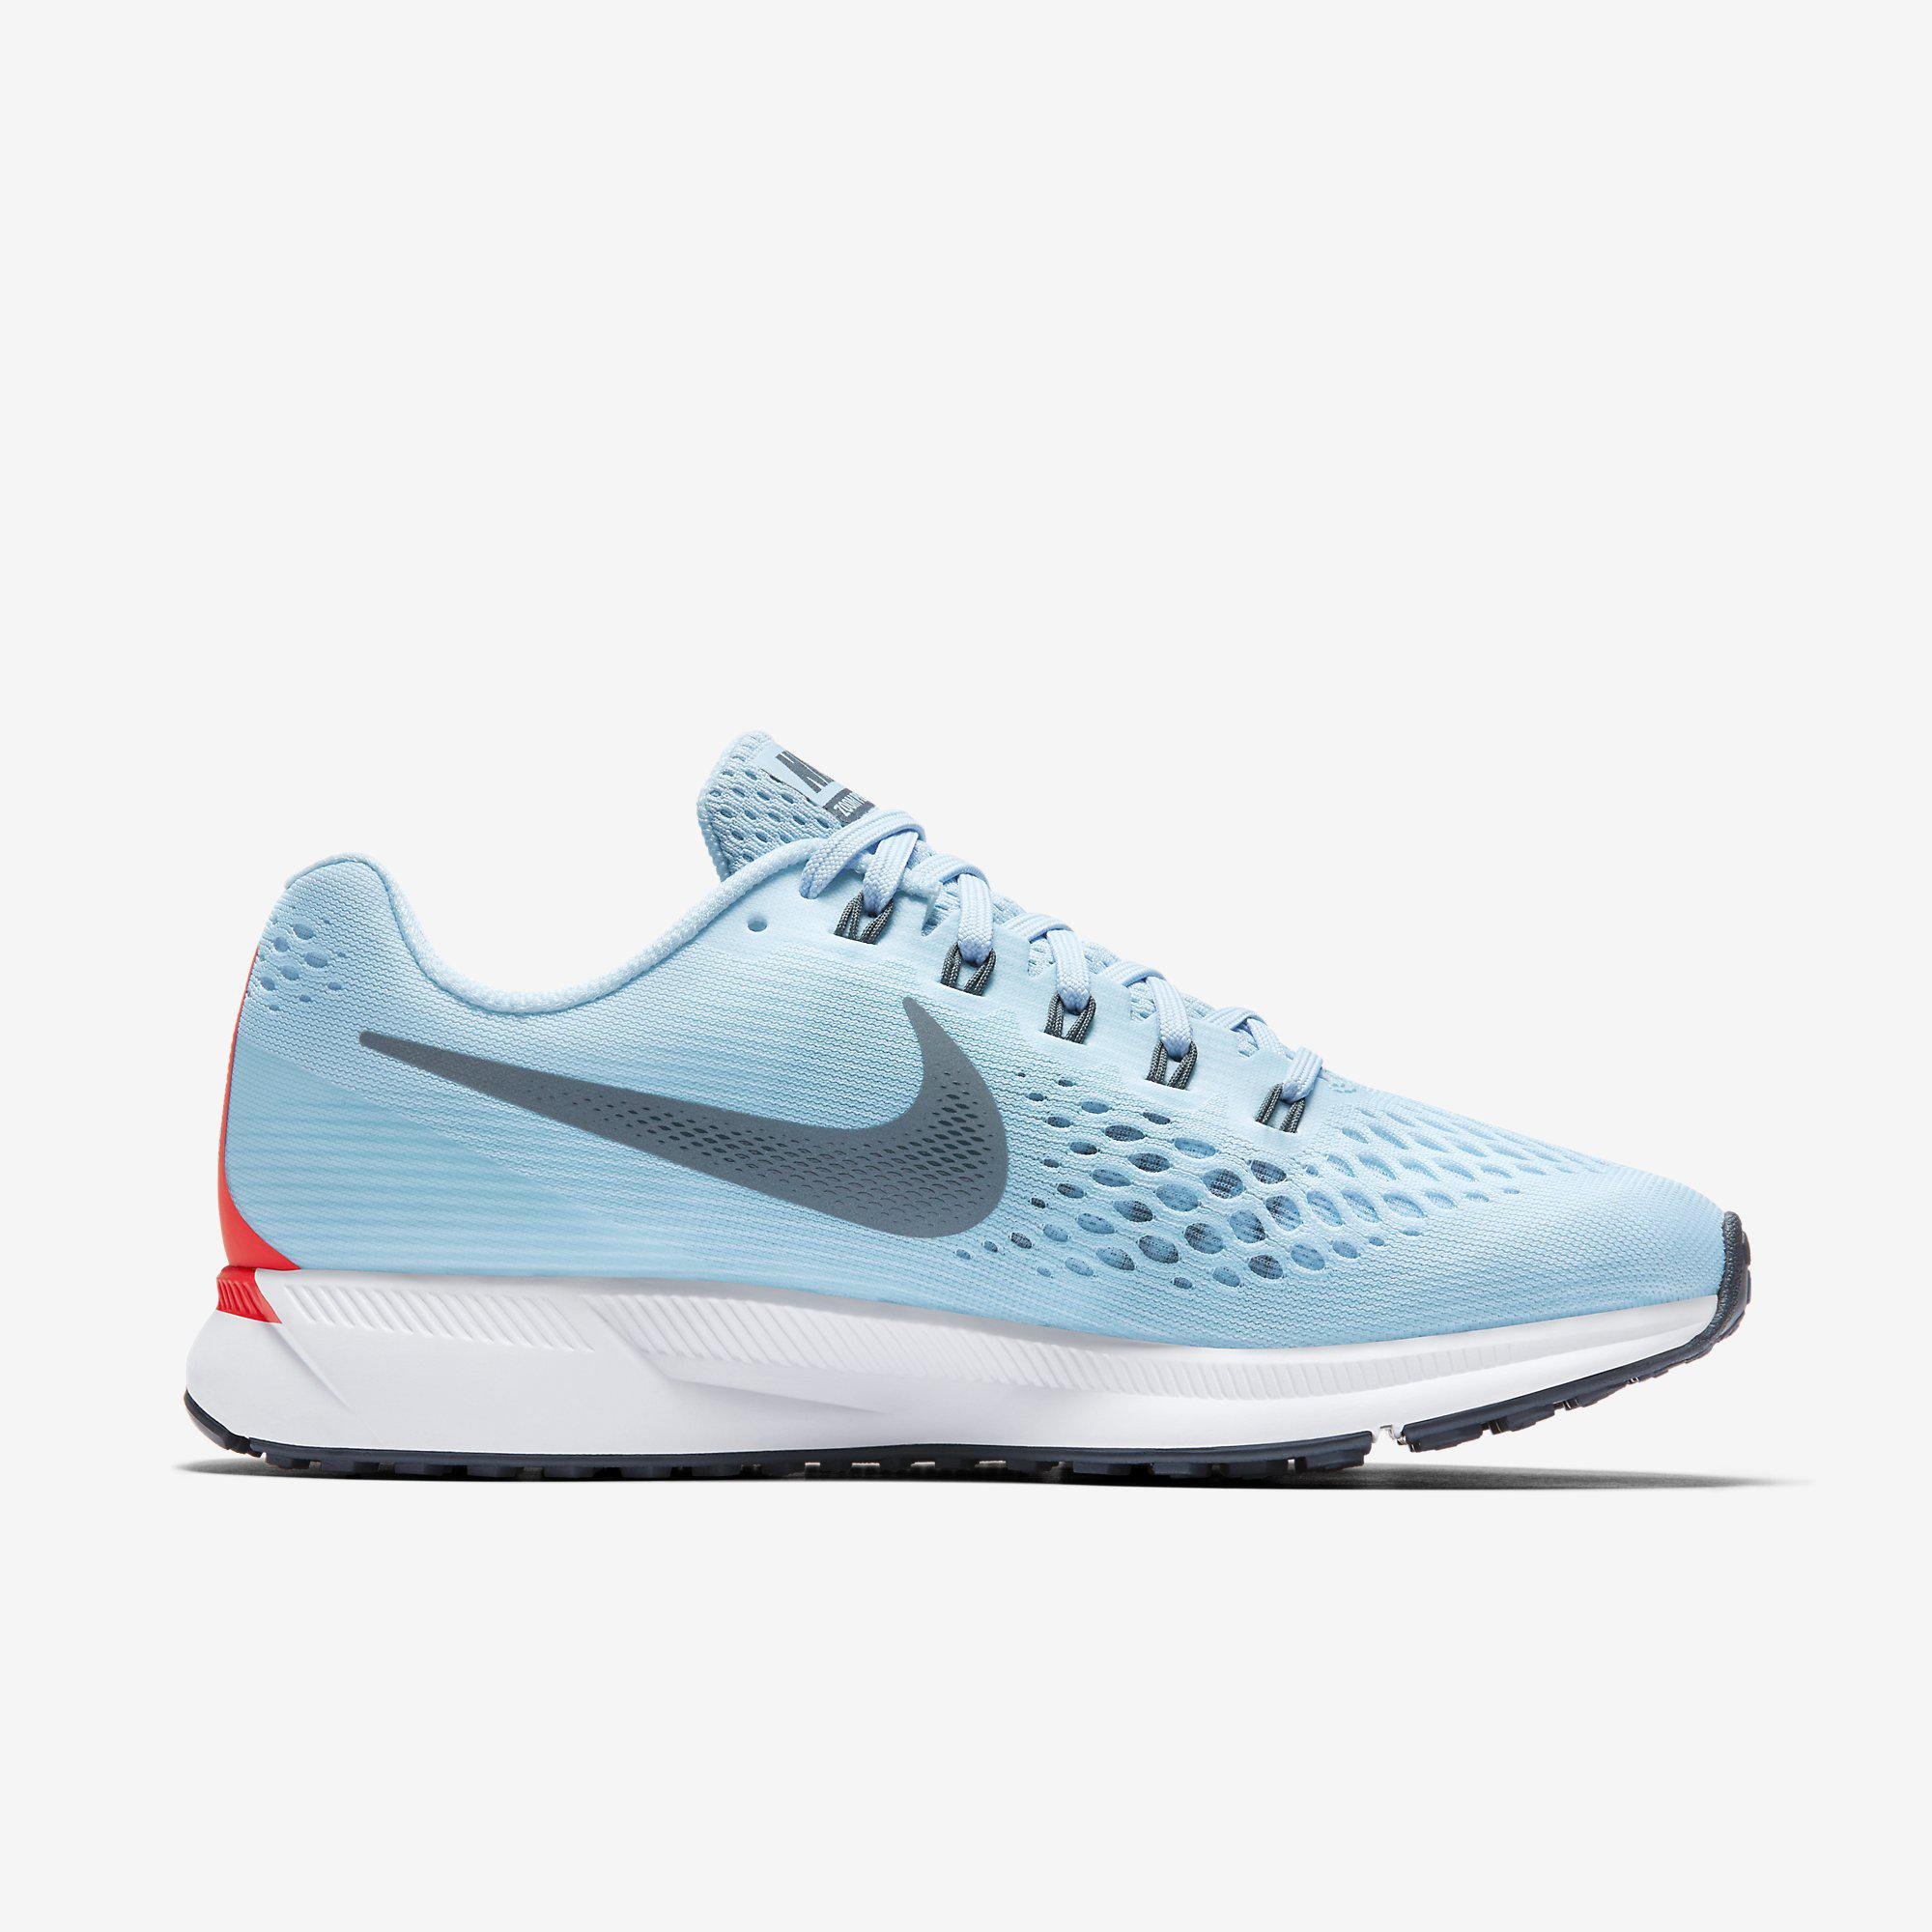 best service 8bcce 5048a Nike Mens Air Zoom Pegasus 34 Running Shoes - Ice Blue - Tennisnuts.com